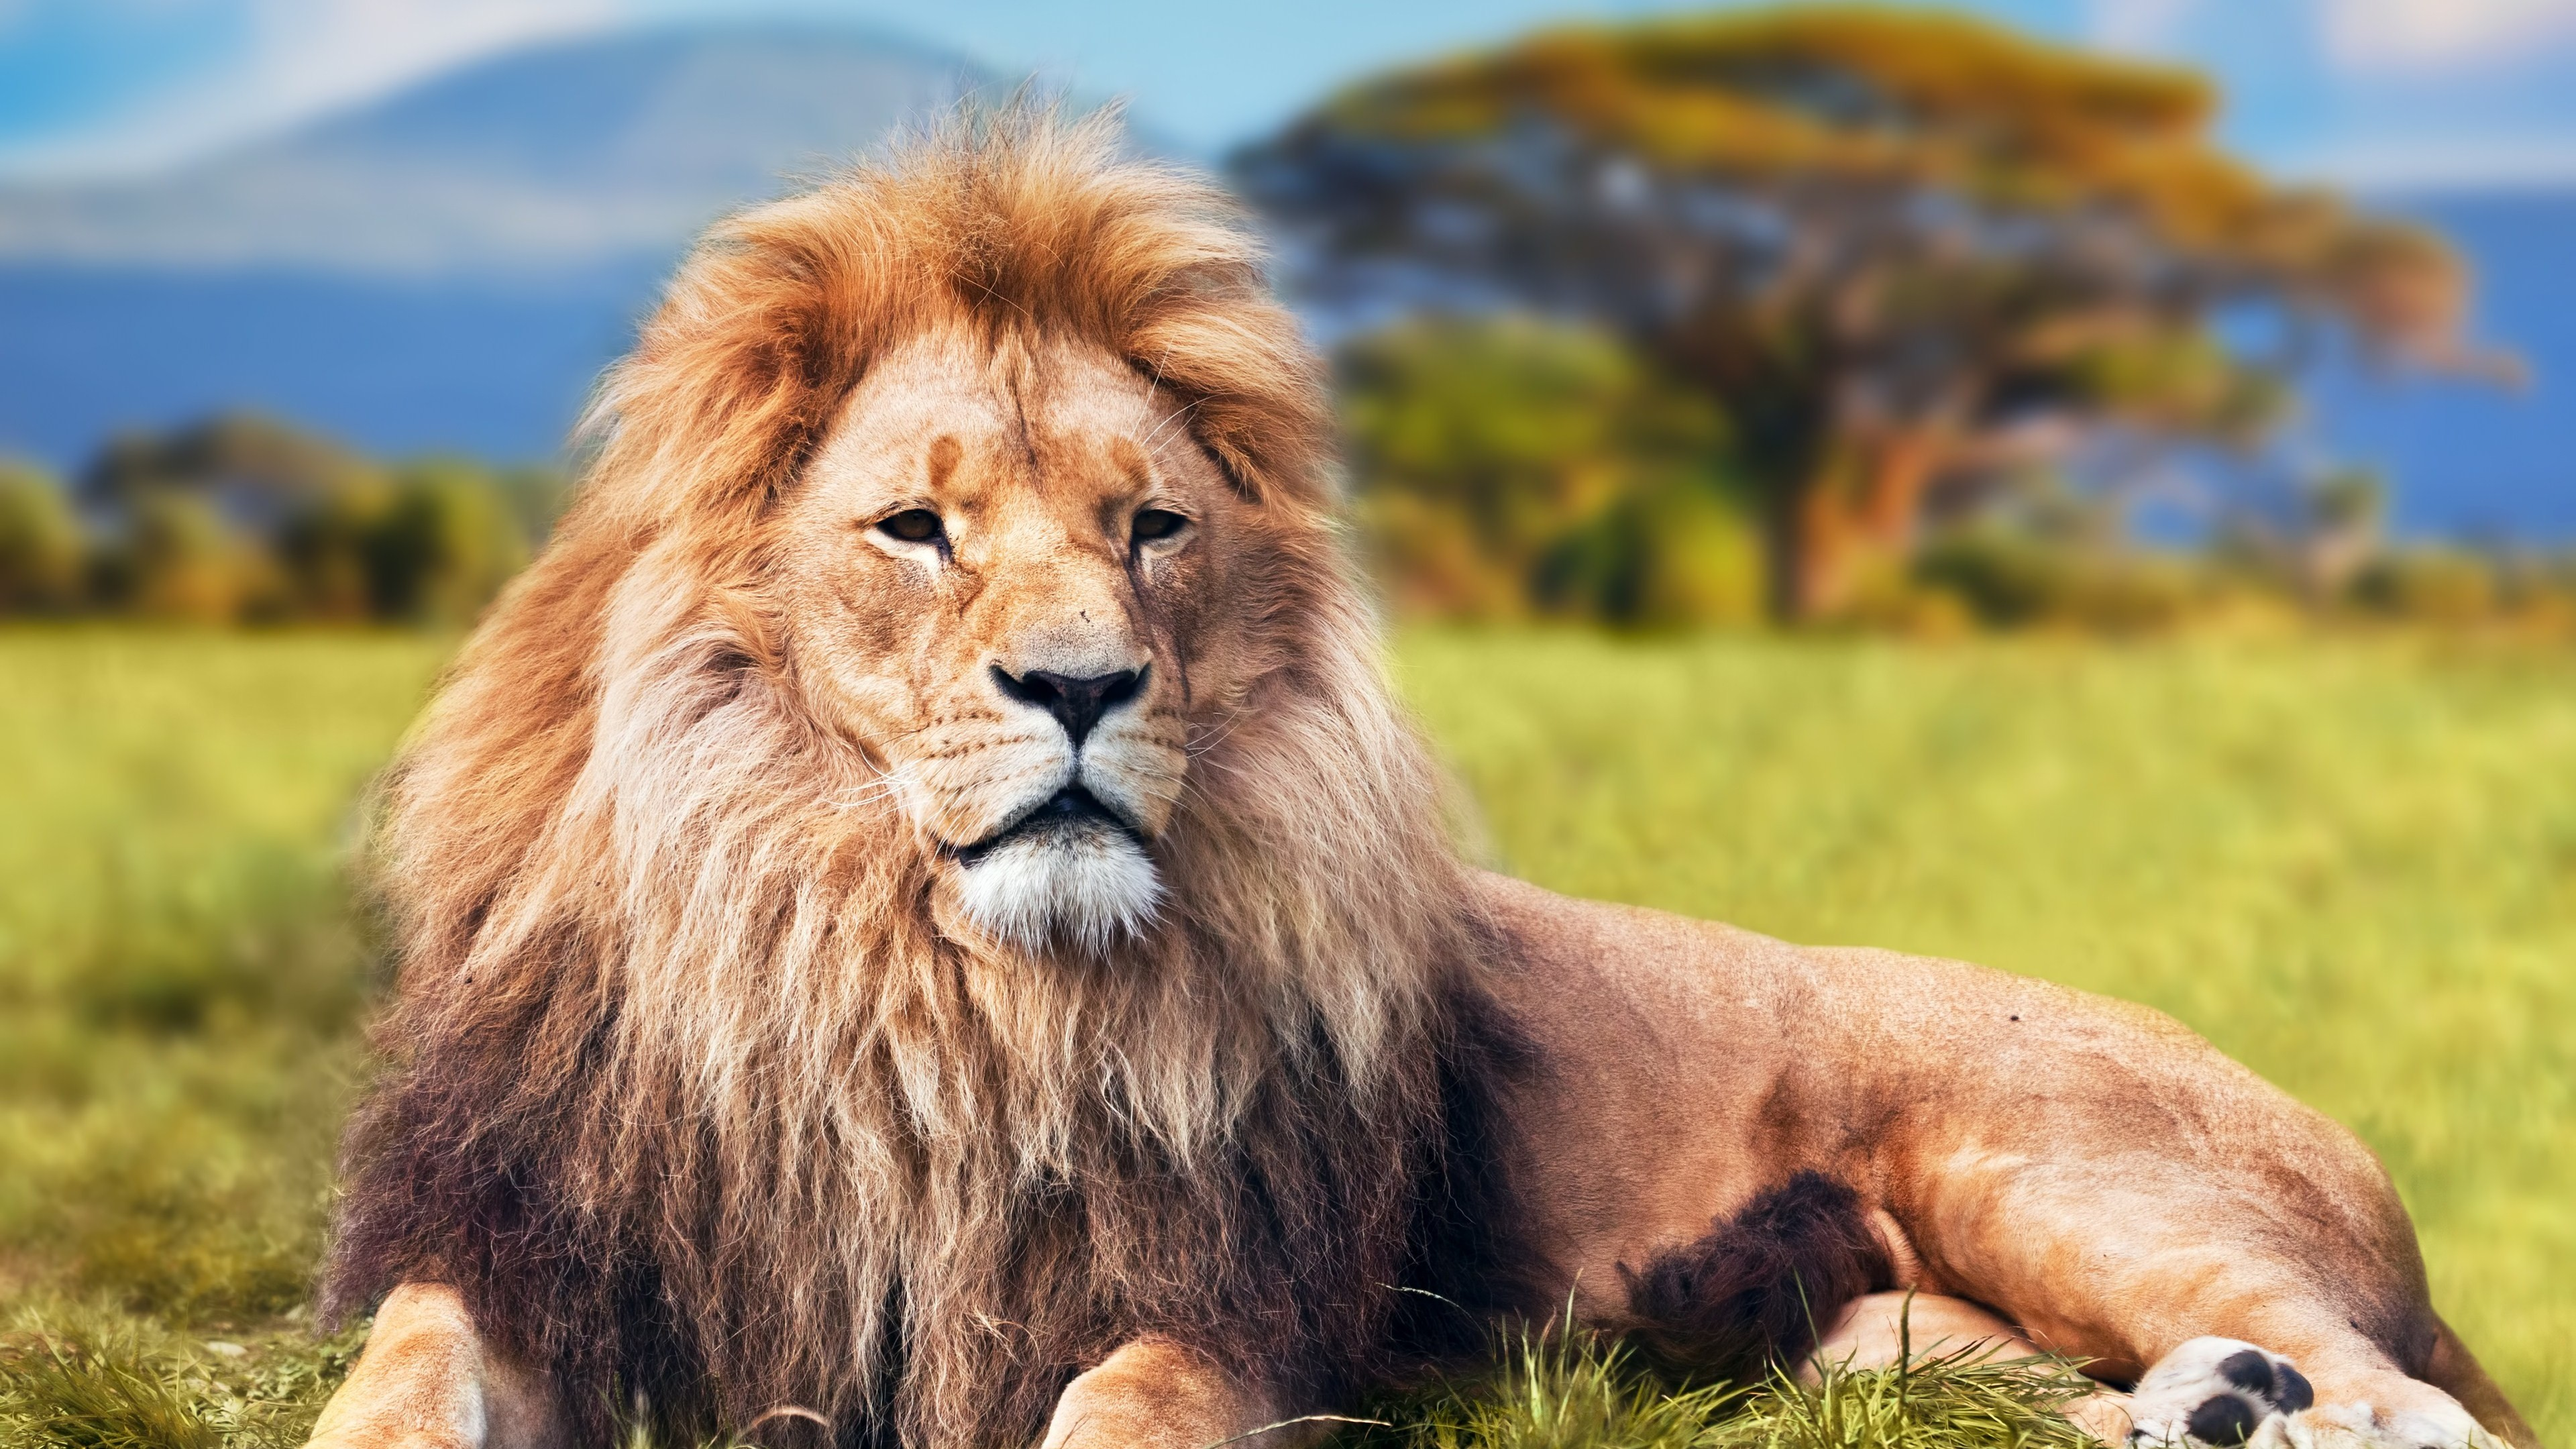 Lion 4k Hd Animals 4k Wallpapers Images Backgrounds Photos And